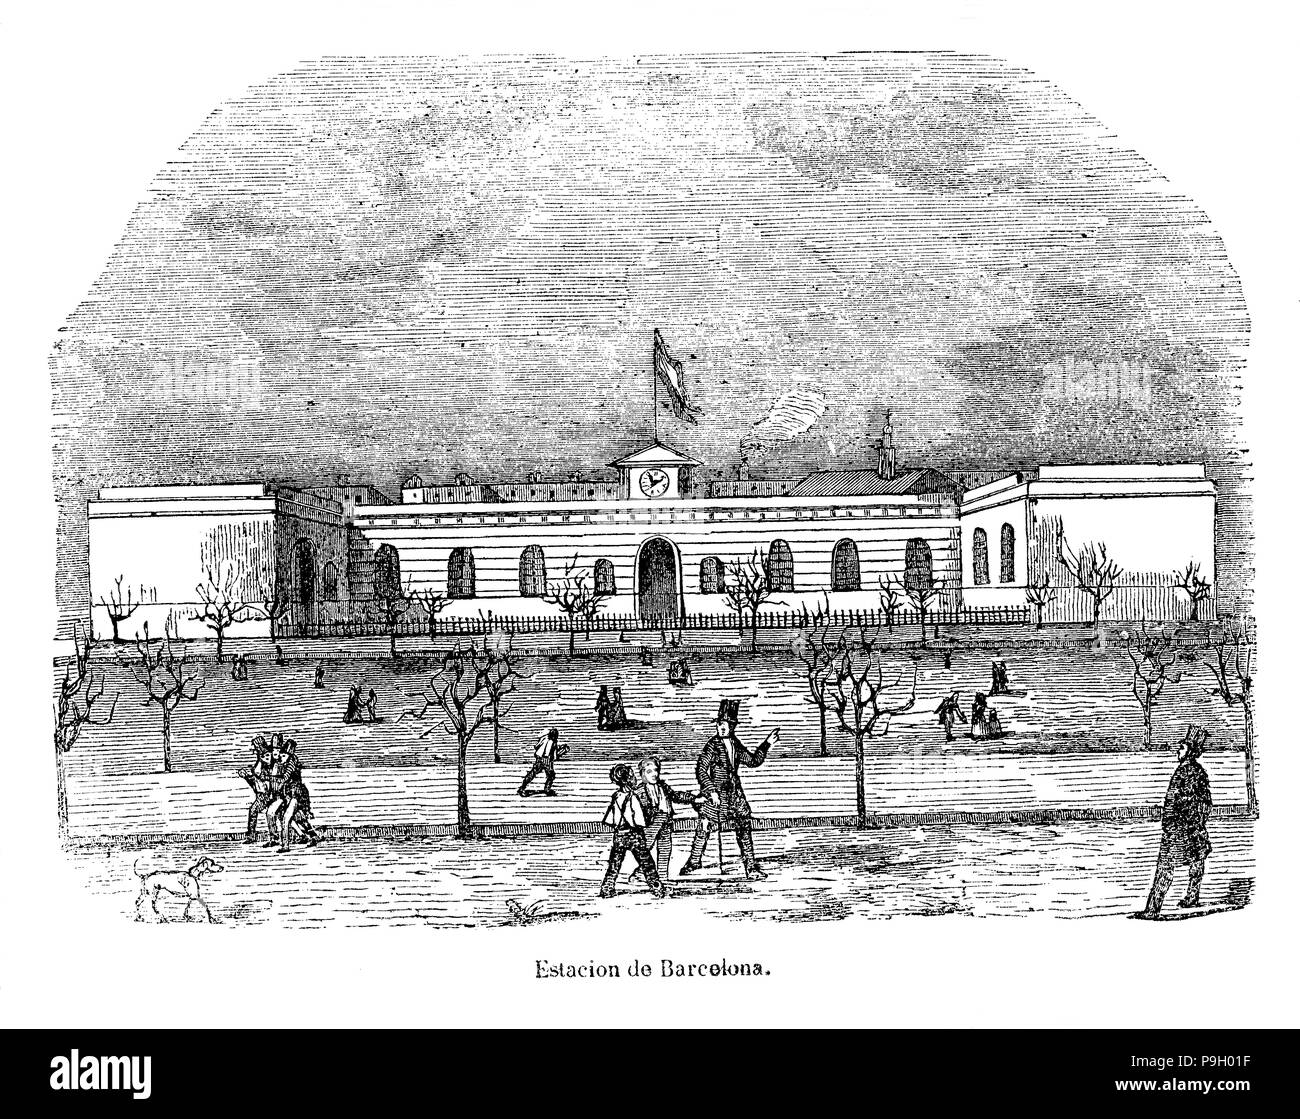 Station of Barcelona of the railway line of Mataró in 1849, vintage engraving. Stock Photo